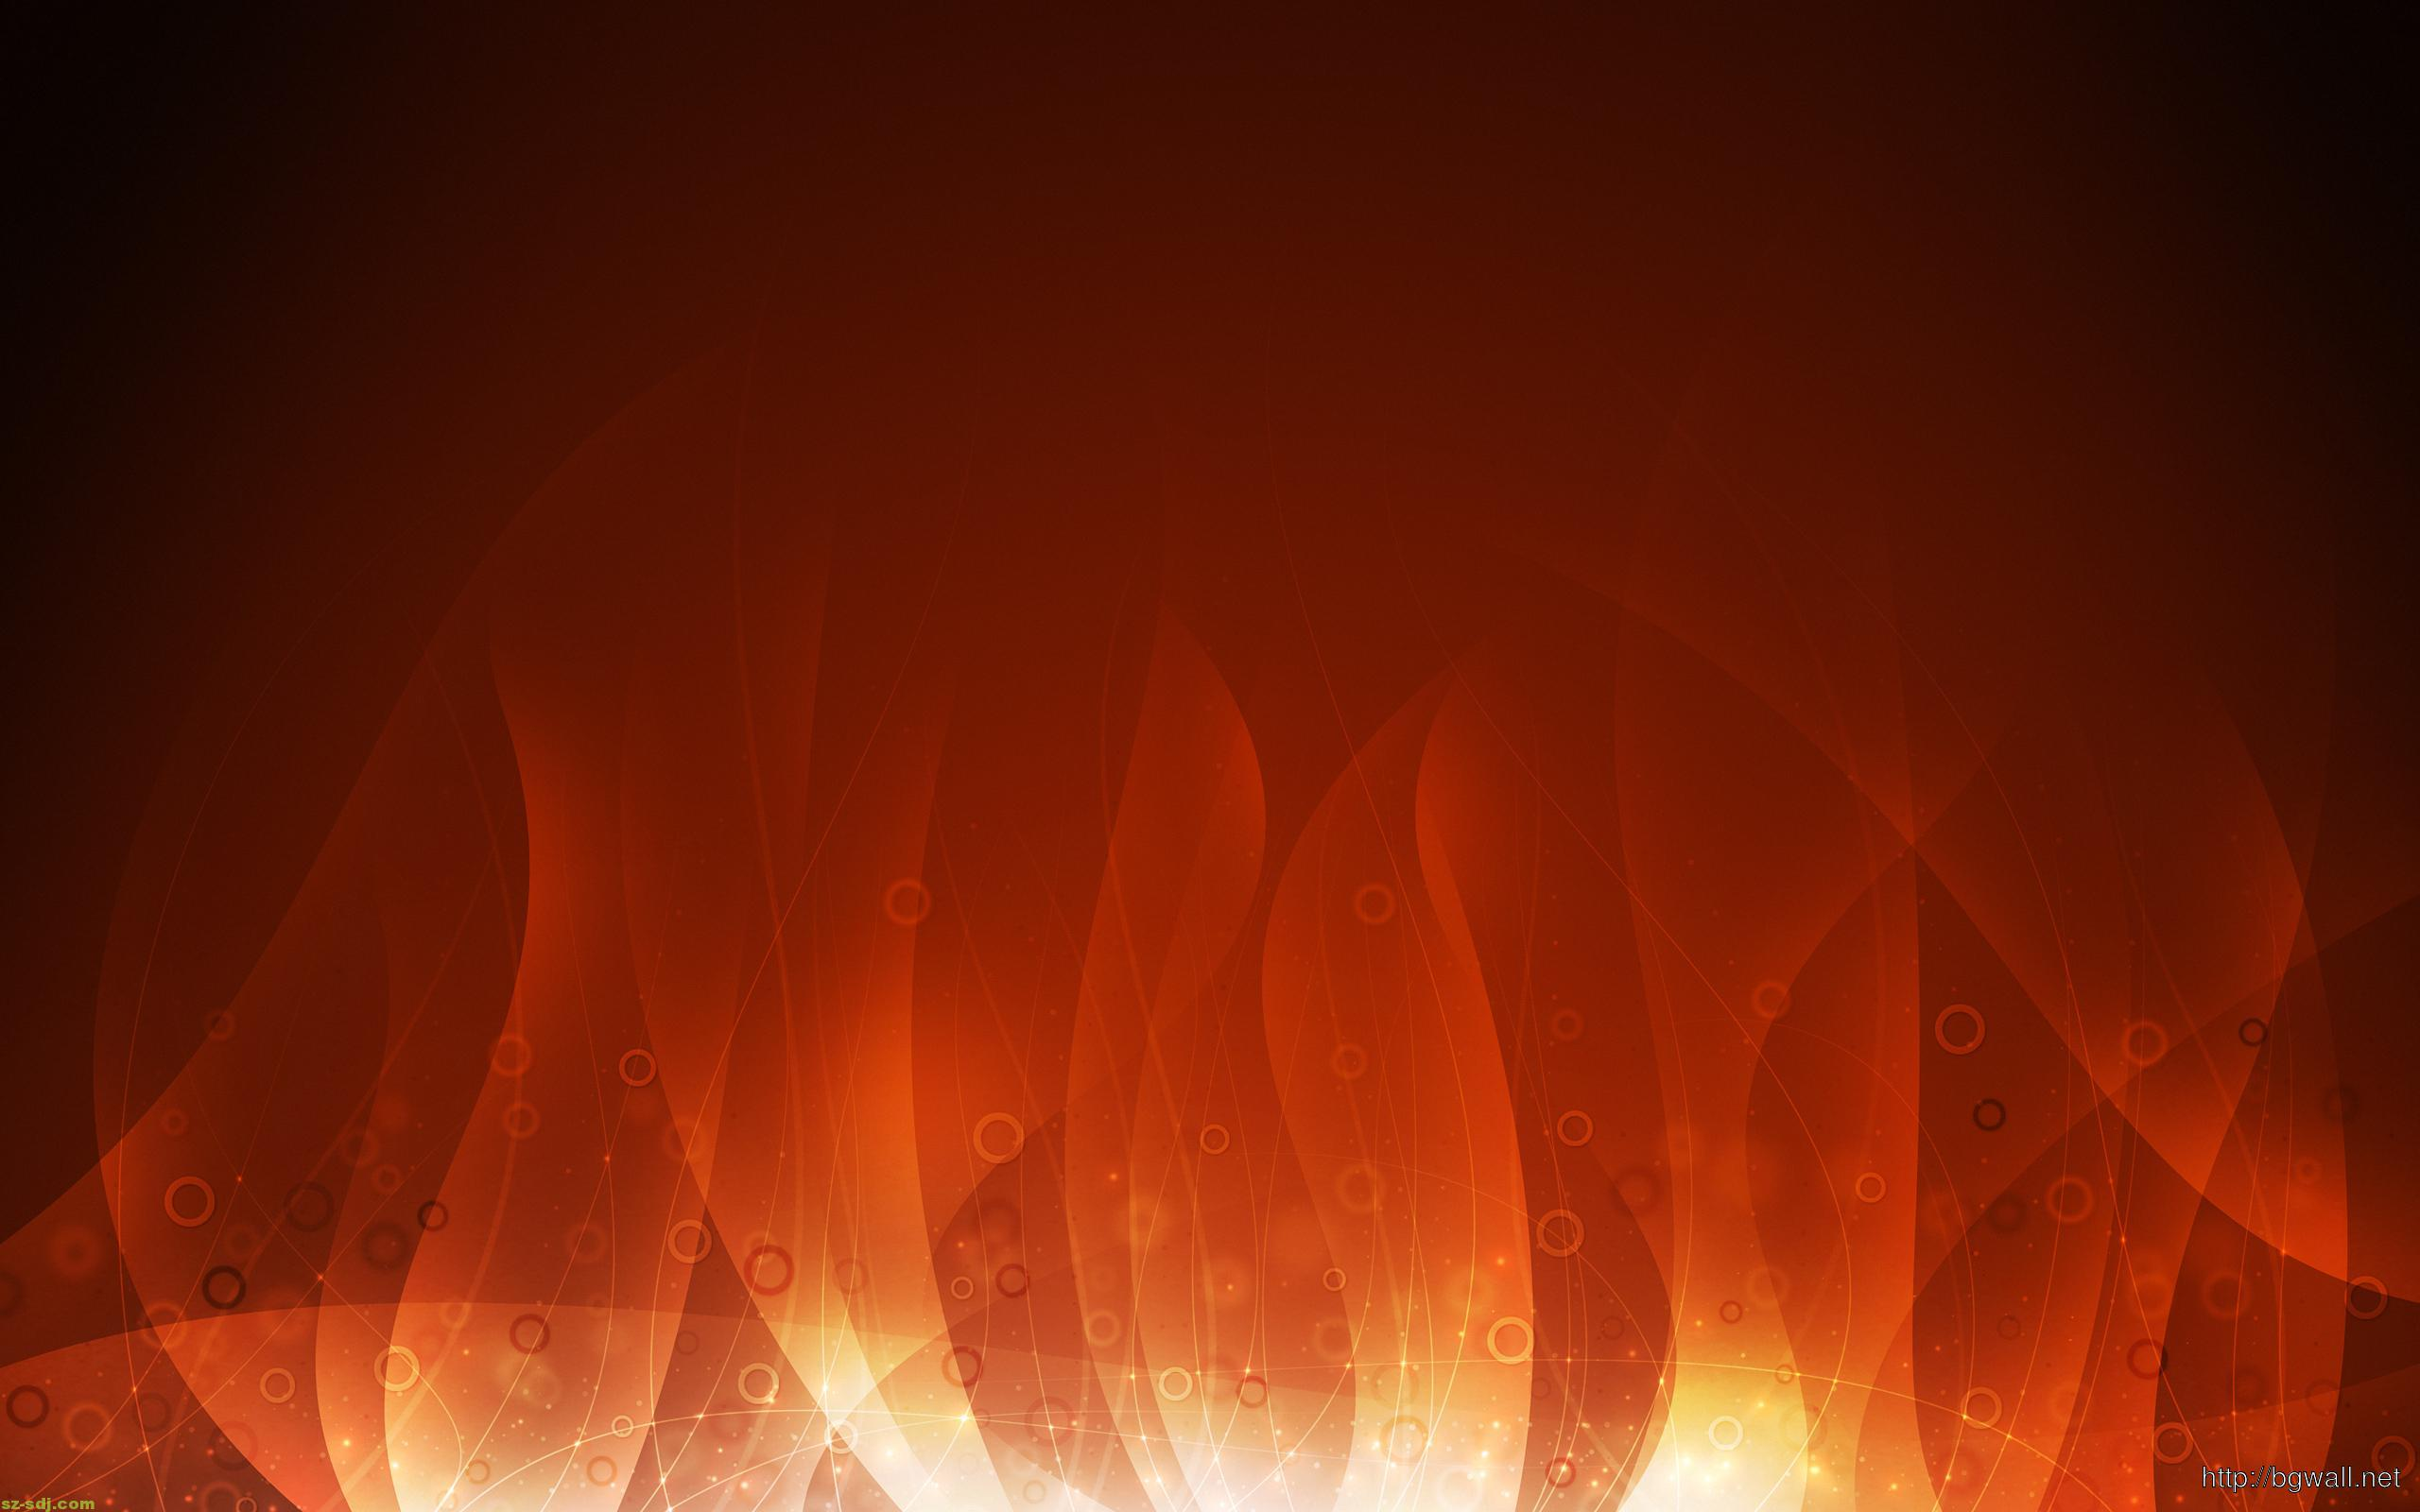 Burning Fire Wallpaper Pics High Definition – Background